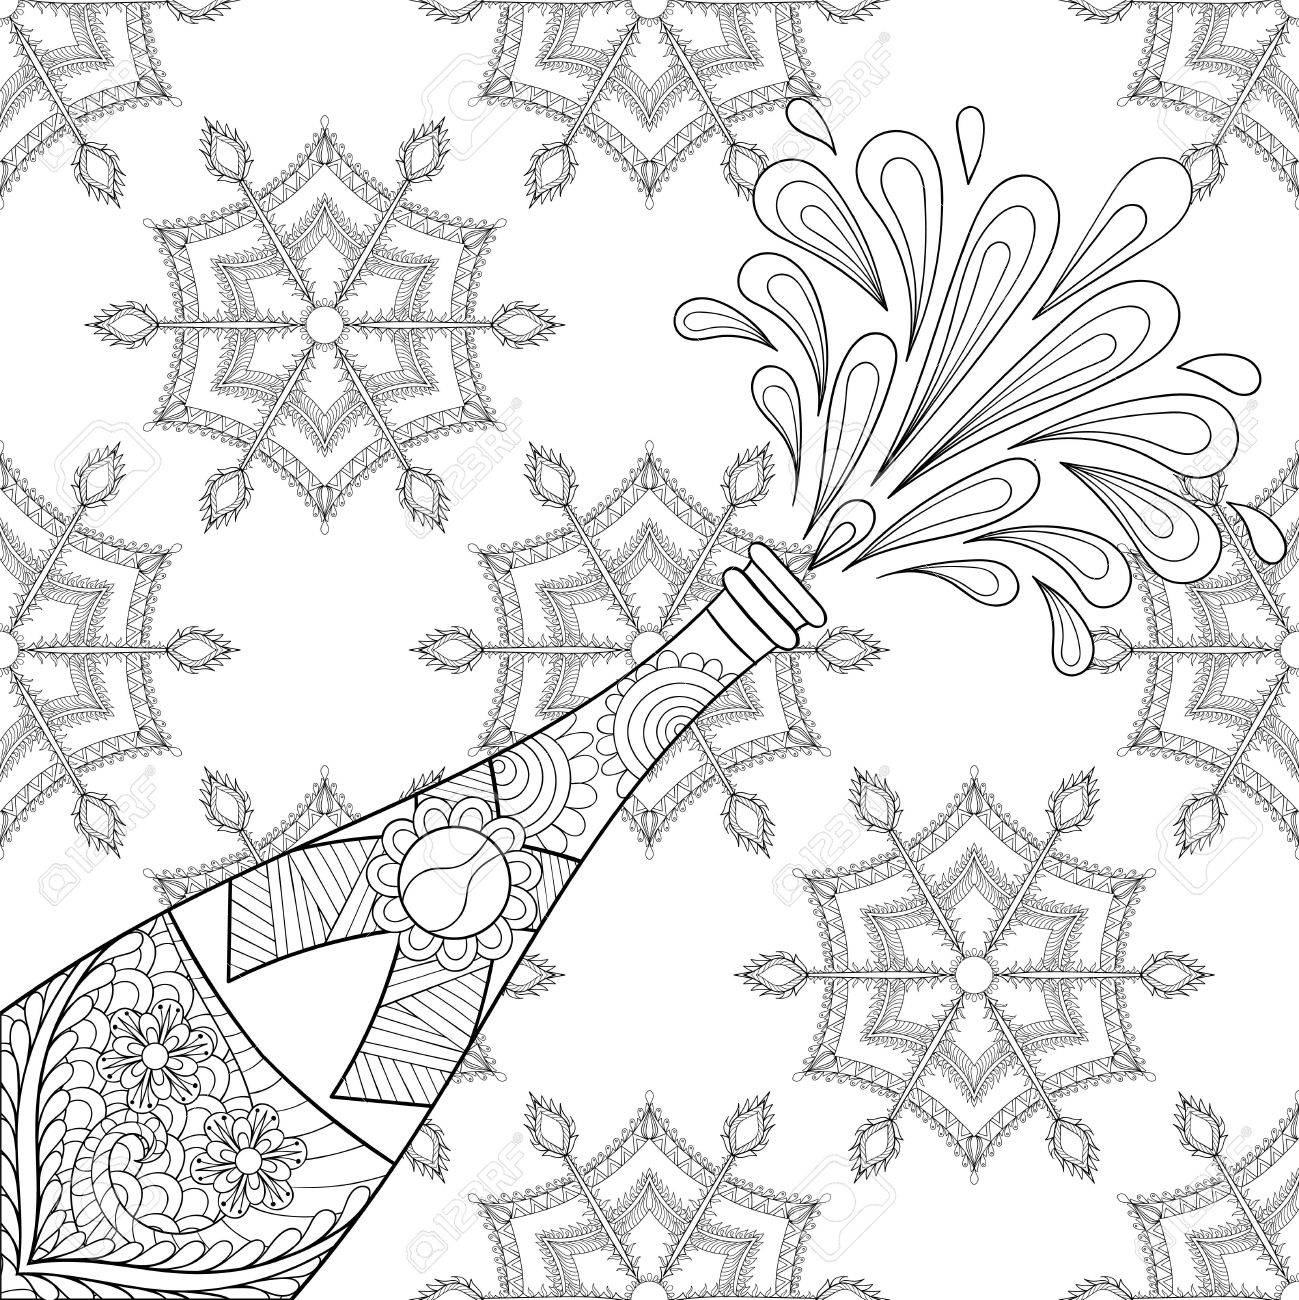 champagne explosion bottle on snowflakes zentangle style